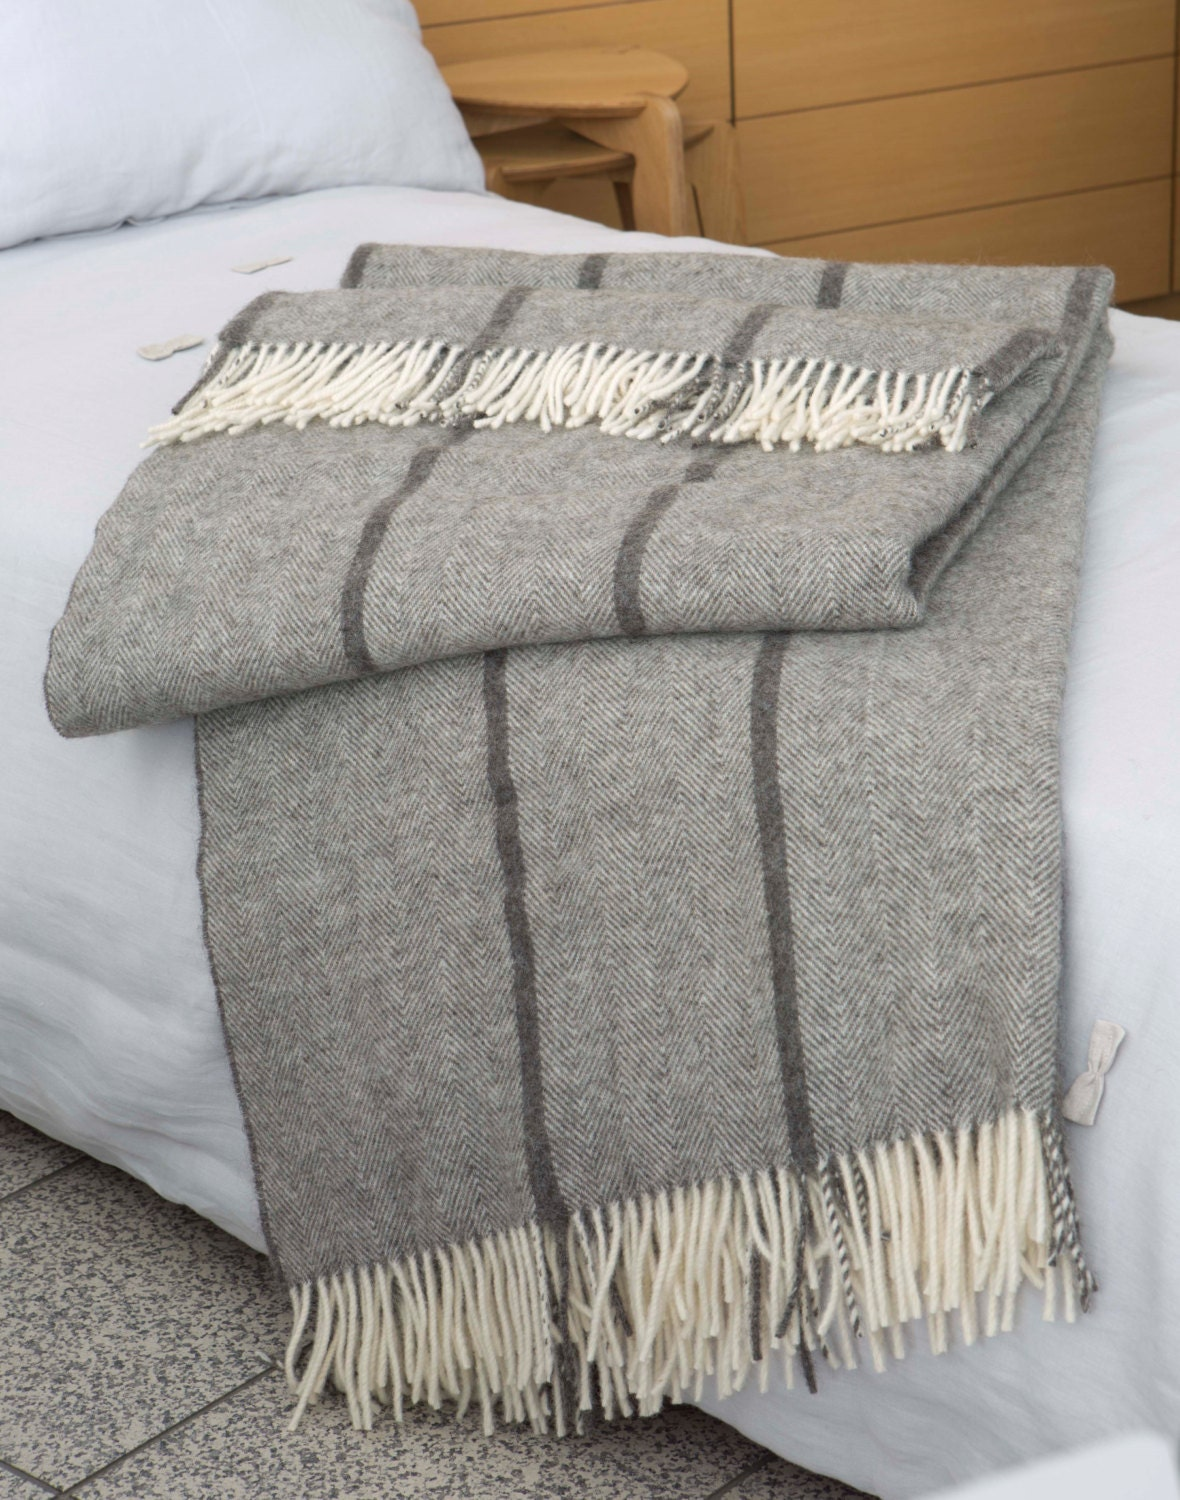 extra large throw king size wool blanket bed throw by boteh. Black Bedroom Furniture Sets. Home Design Ideas